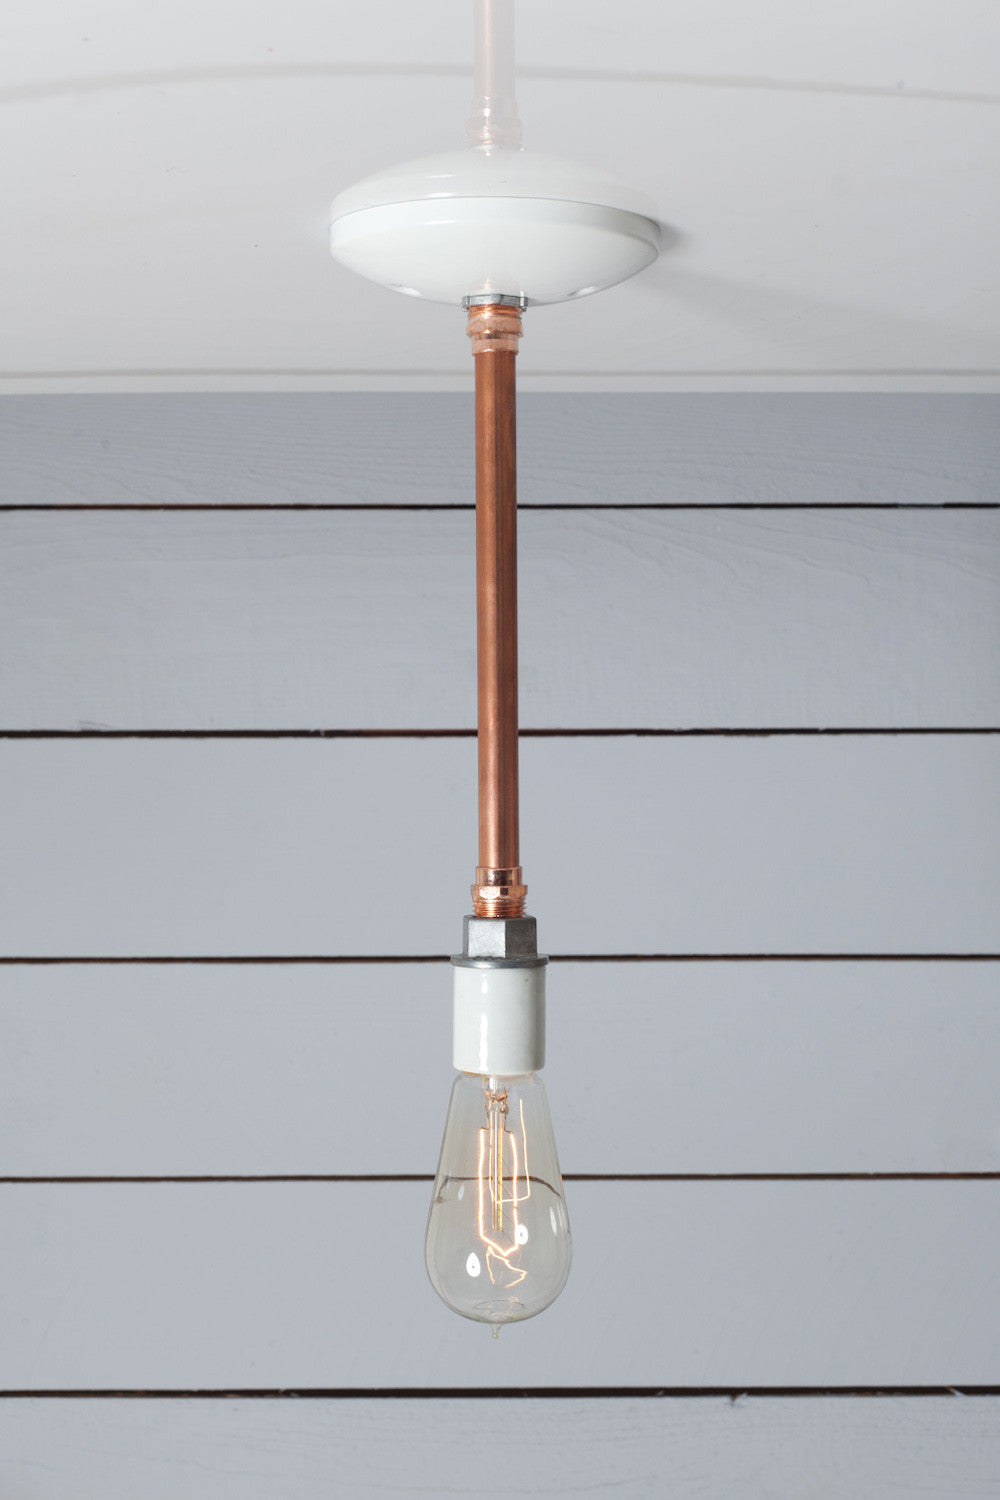 Pendant Copper Pipe Light Bare Bulb Lamp Industrial Light Electric